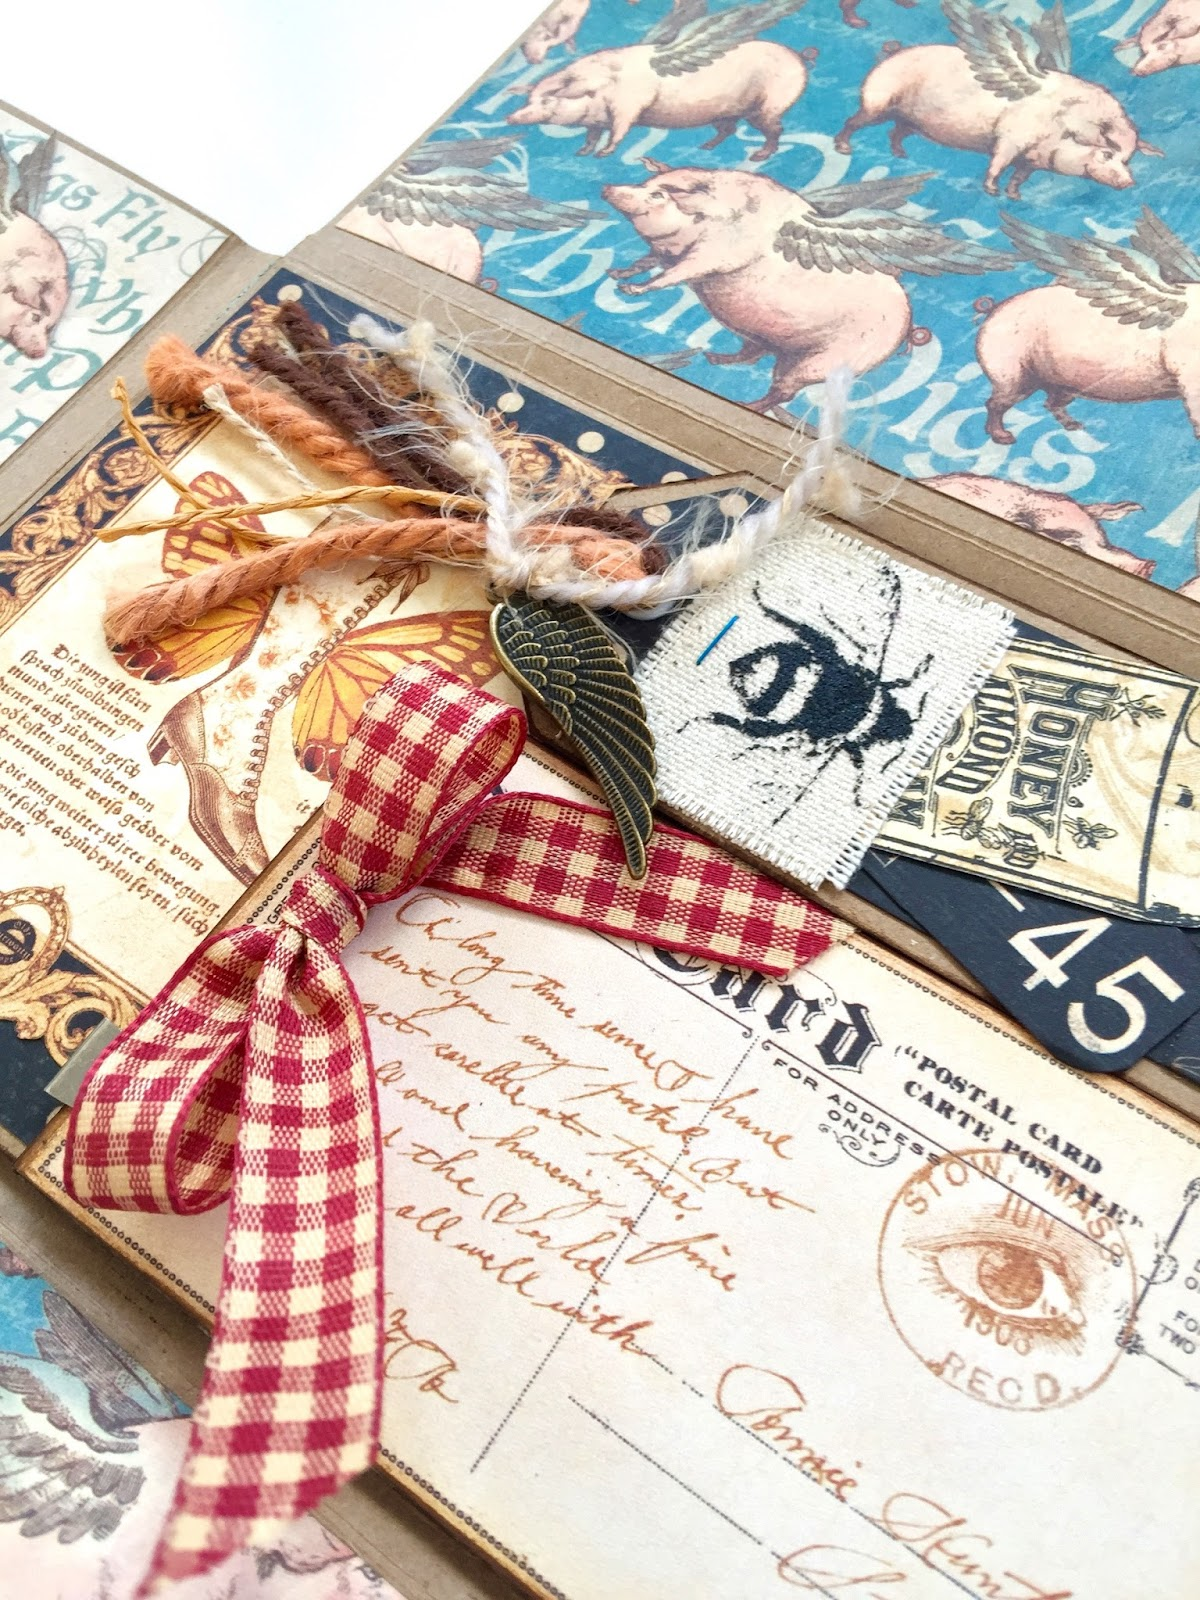 Olde Curiosity Shoppe Flip Flap Mini Album by Marina Blaukitchen Product by Graphic 45 photo 6.jpg